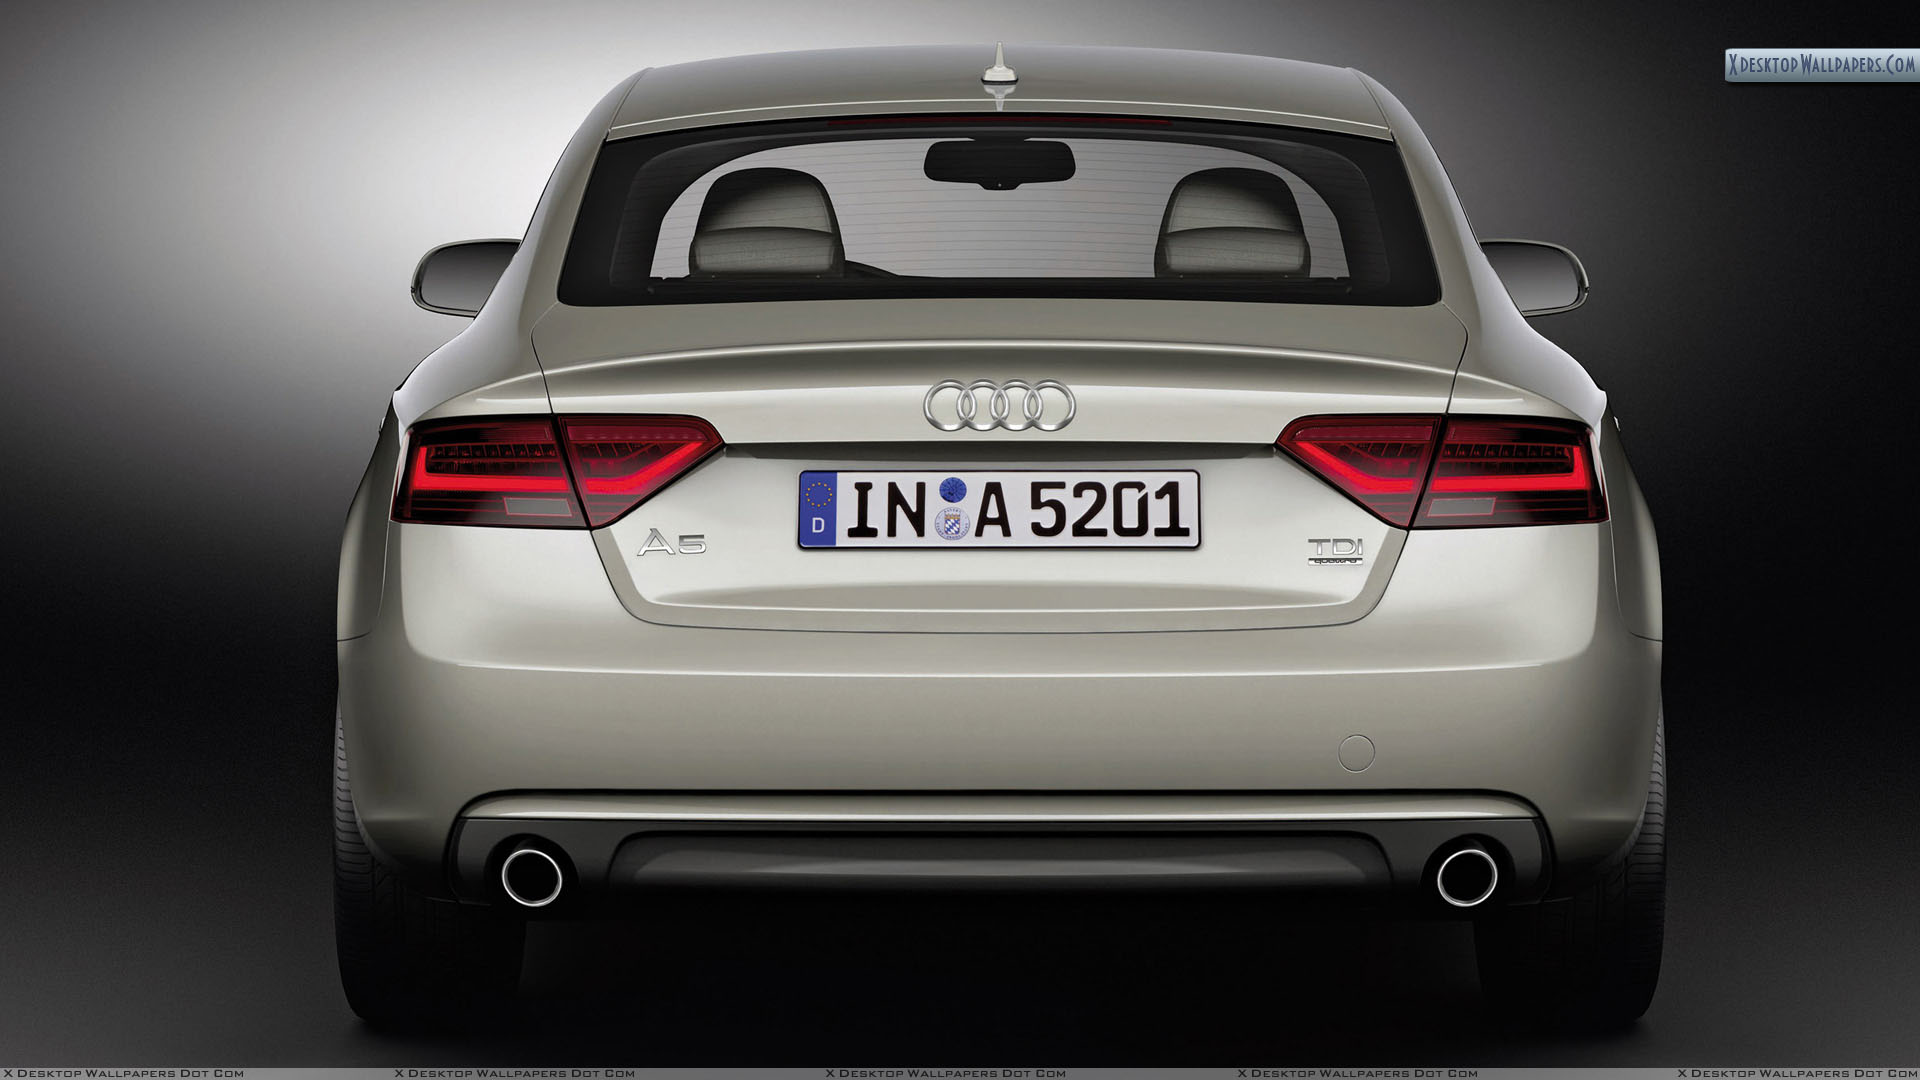 Audi A5 Wallpapers Photos Amp Images In Hd